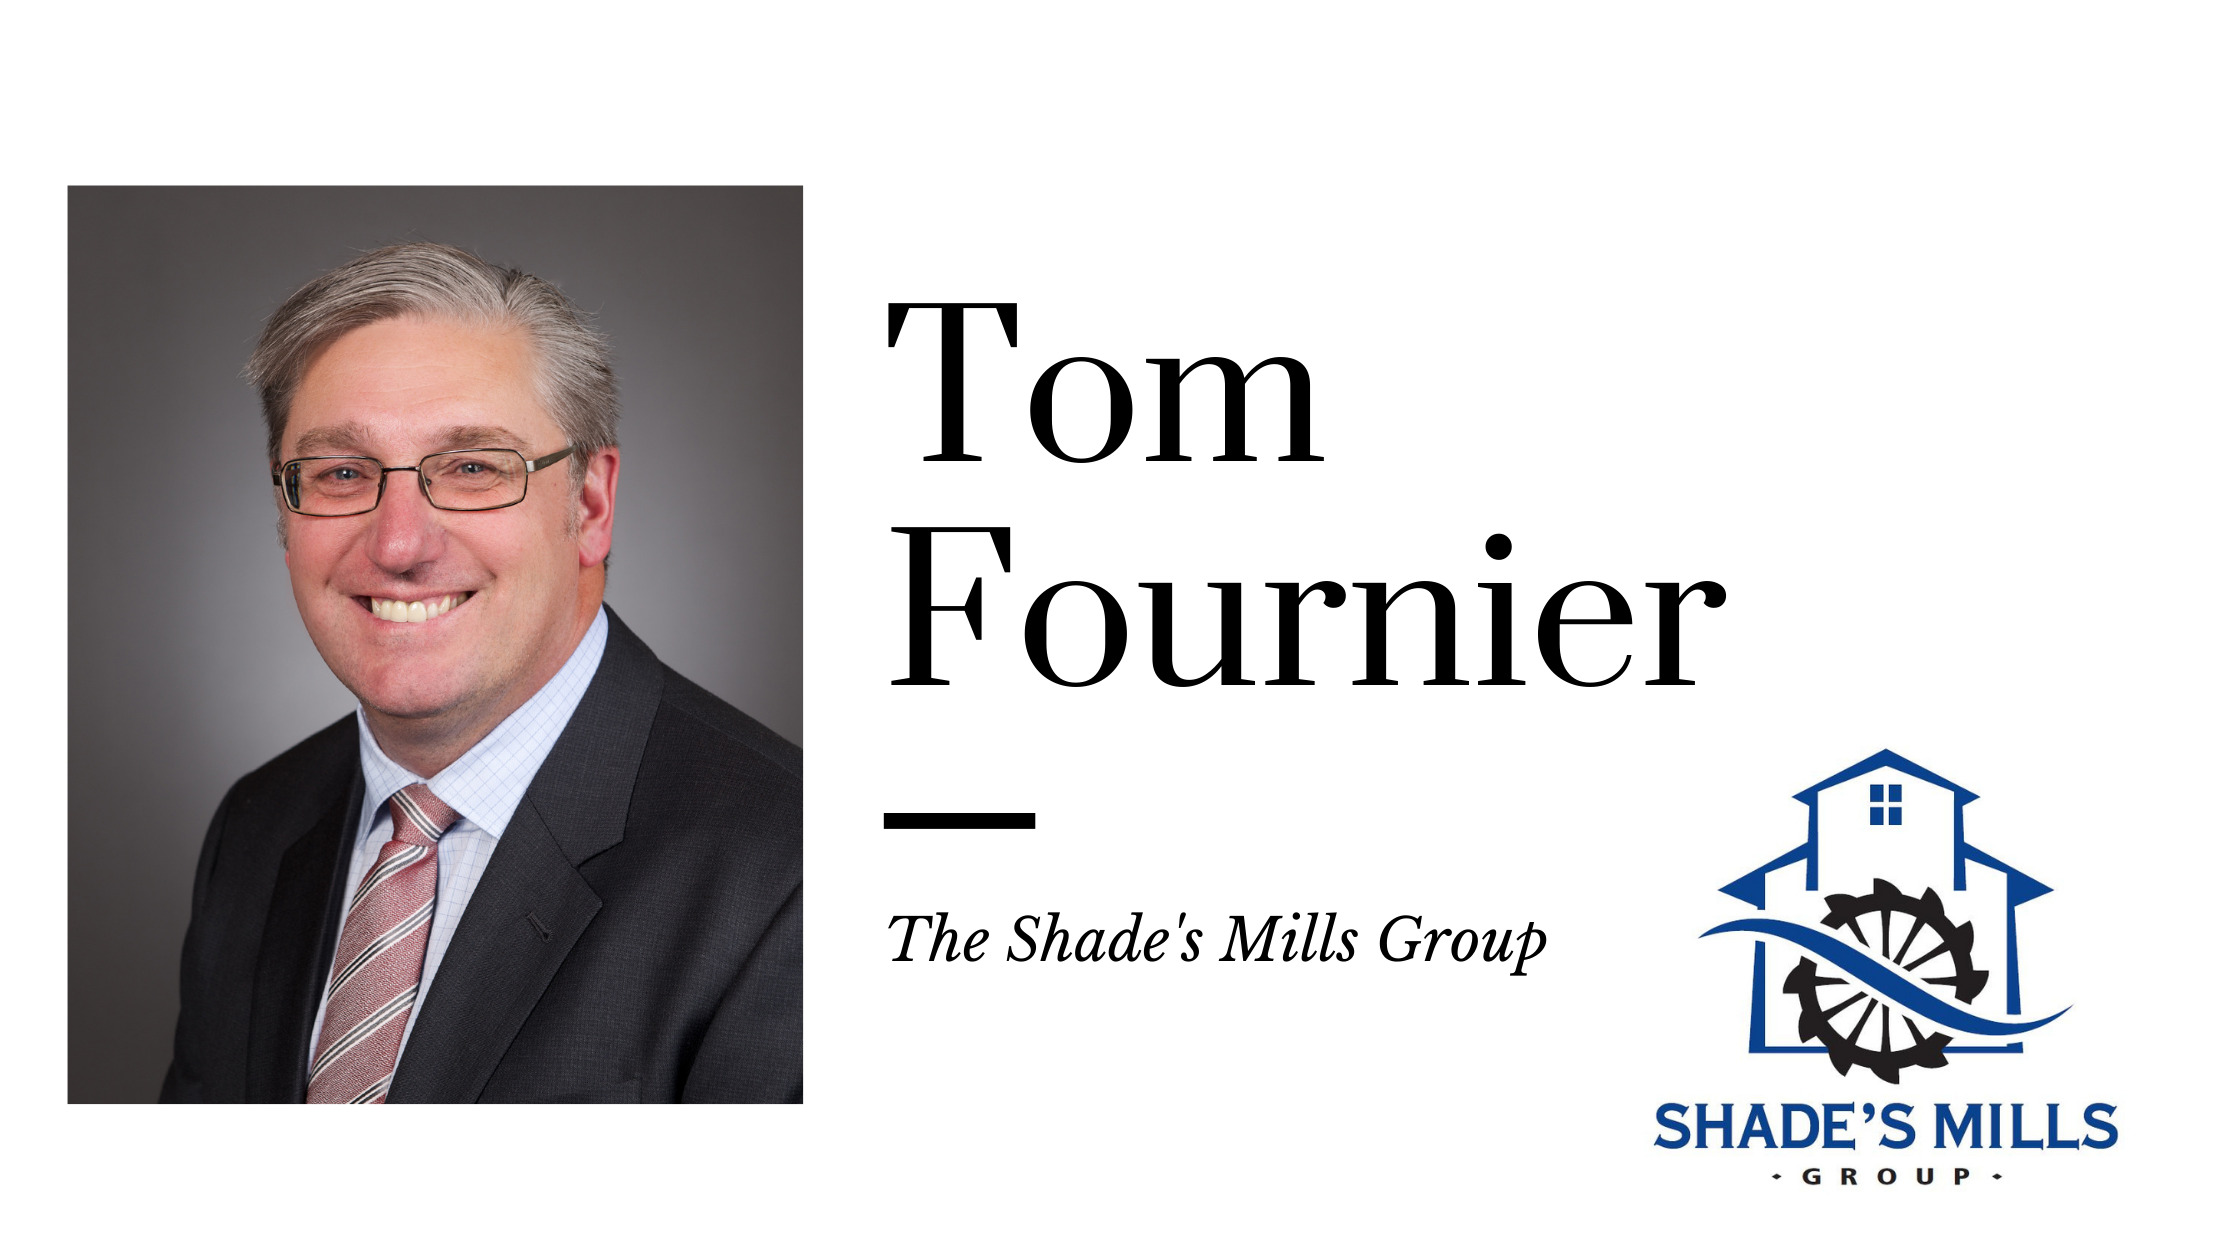 Tom Fournier and Shade's Mills Group